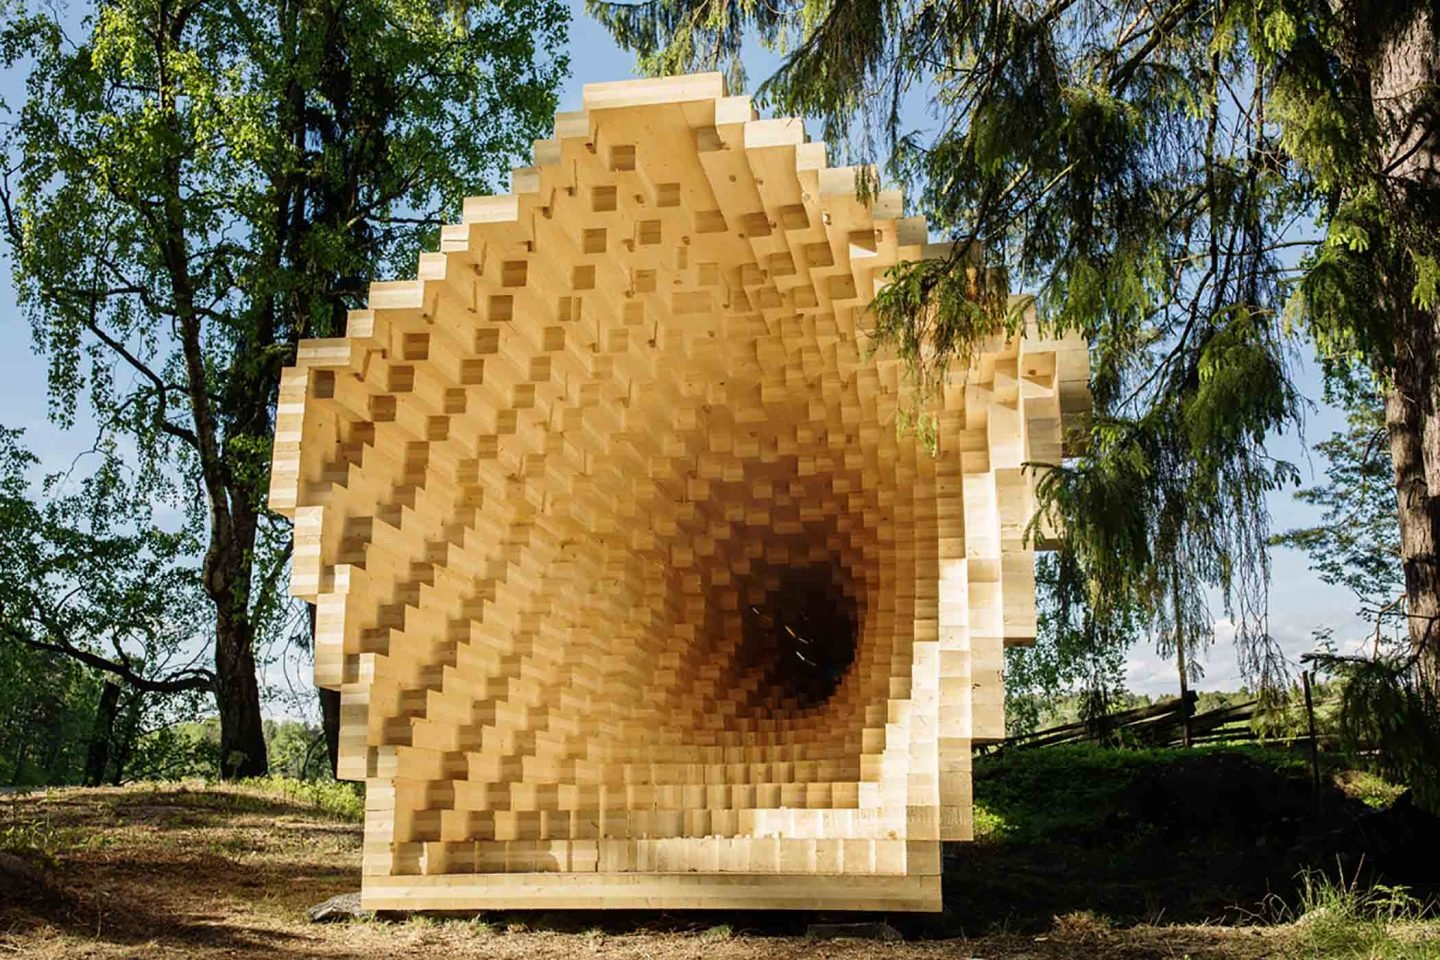 A Pixelated Wood Installation